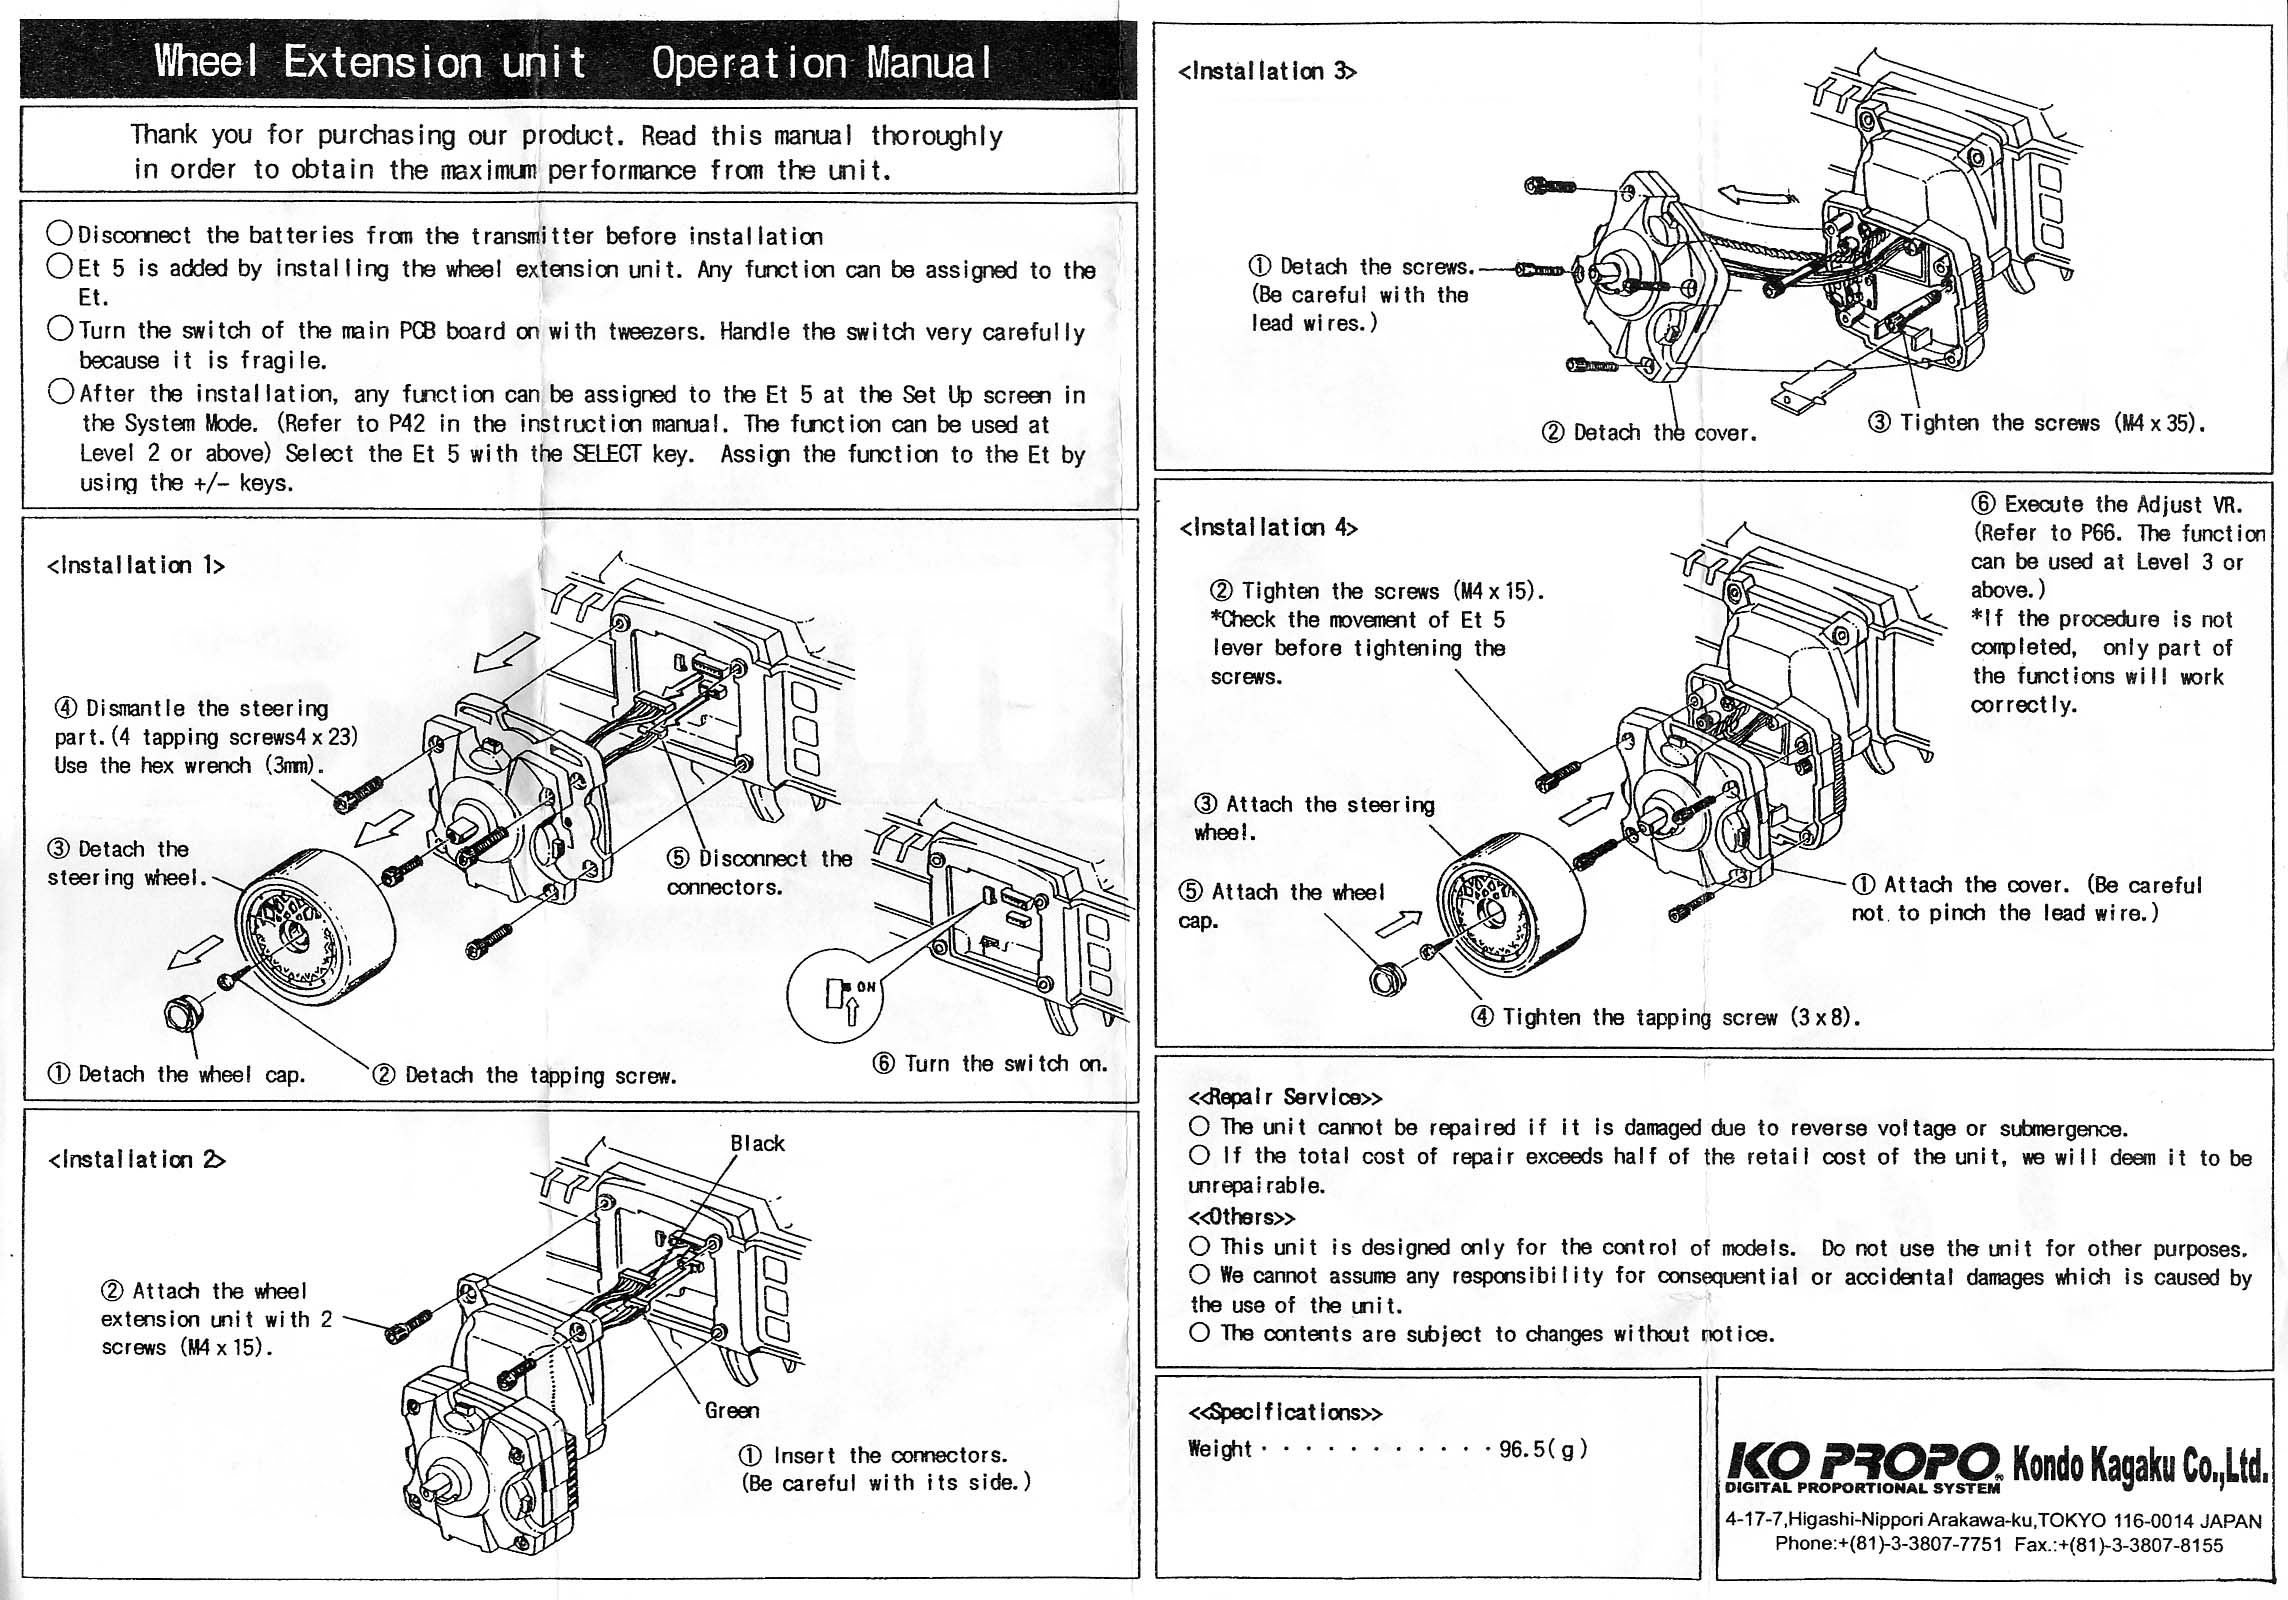 Manuals Kopropo America